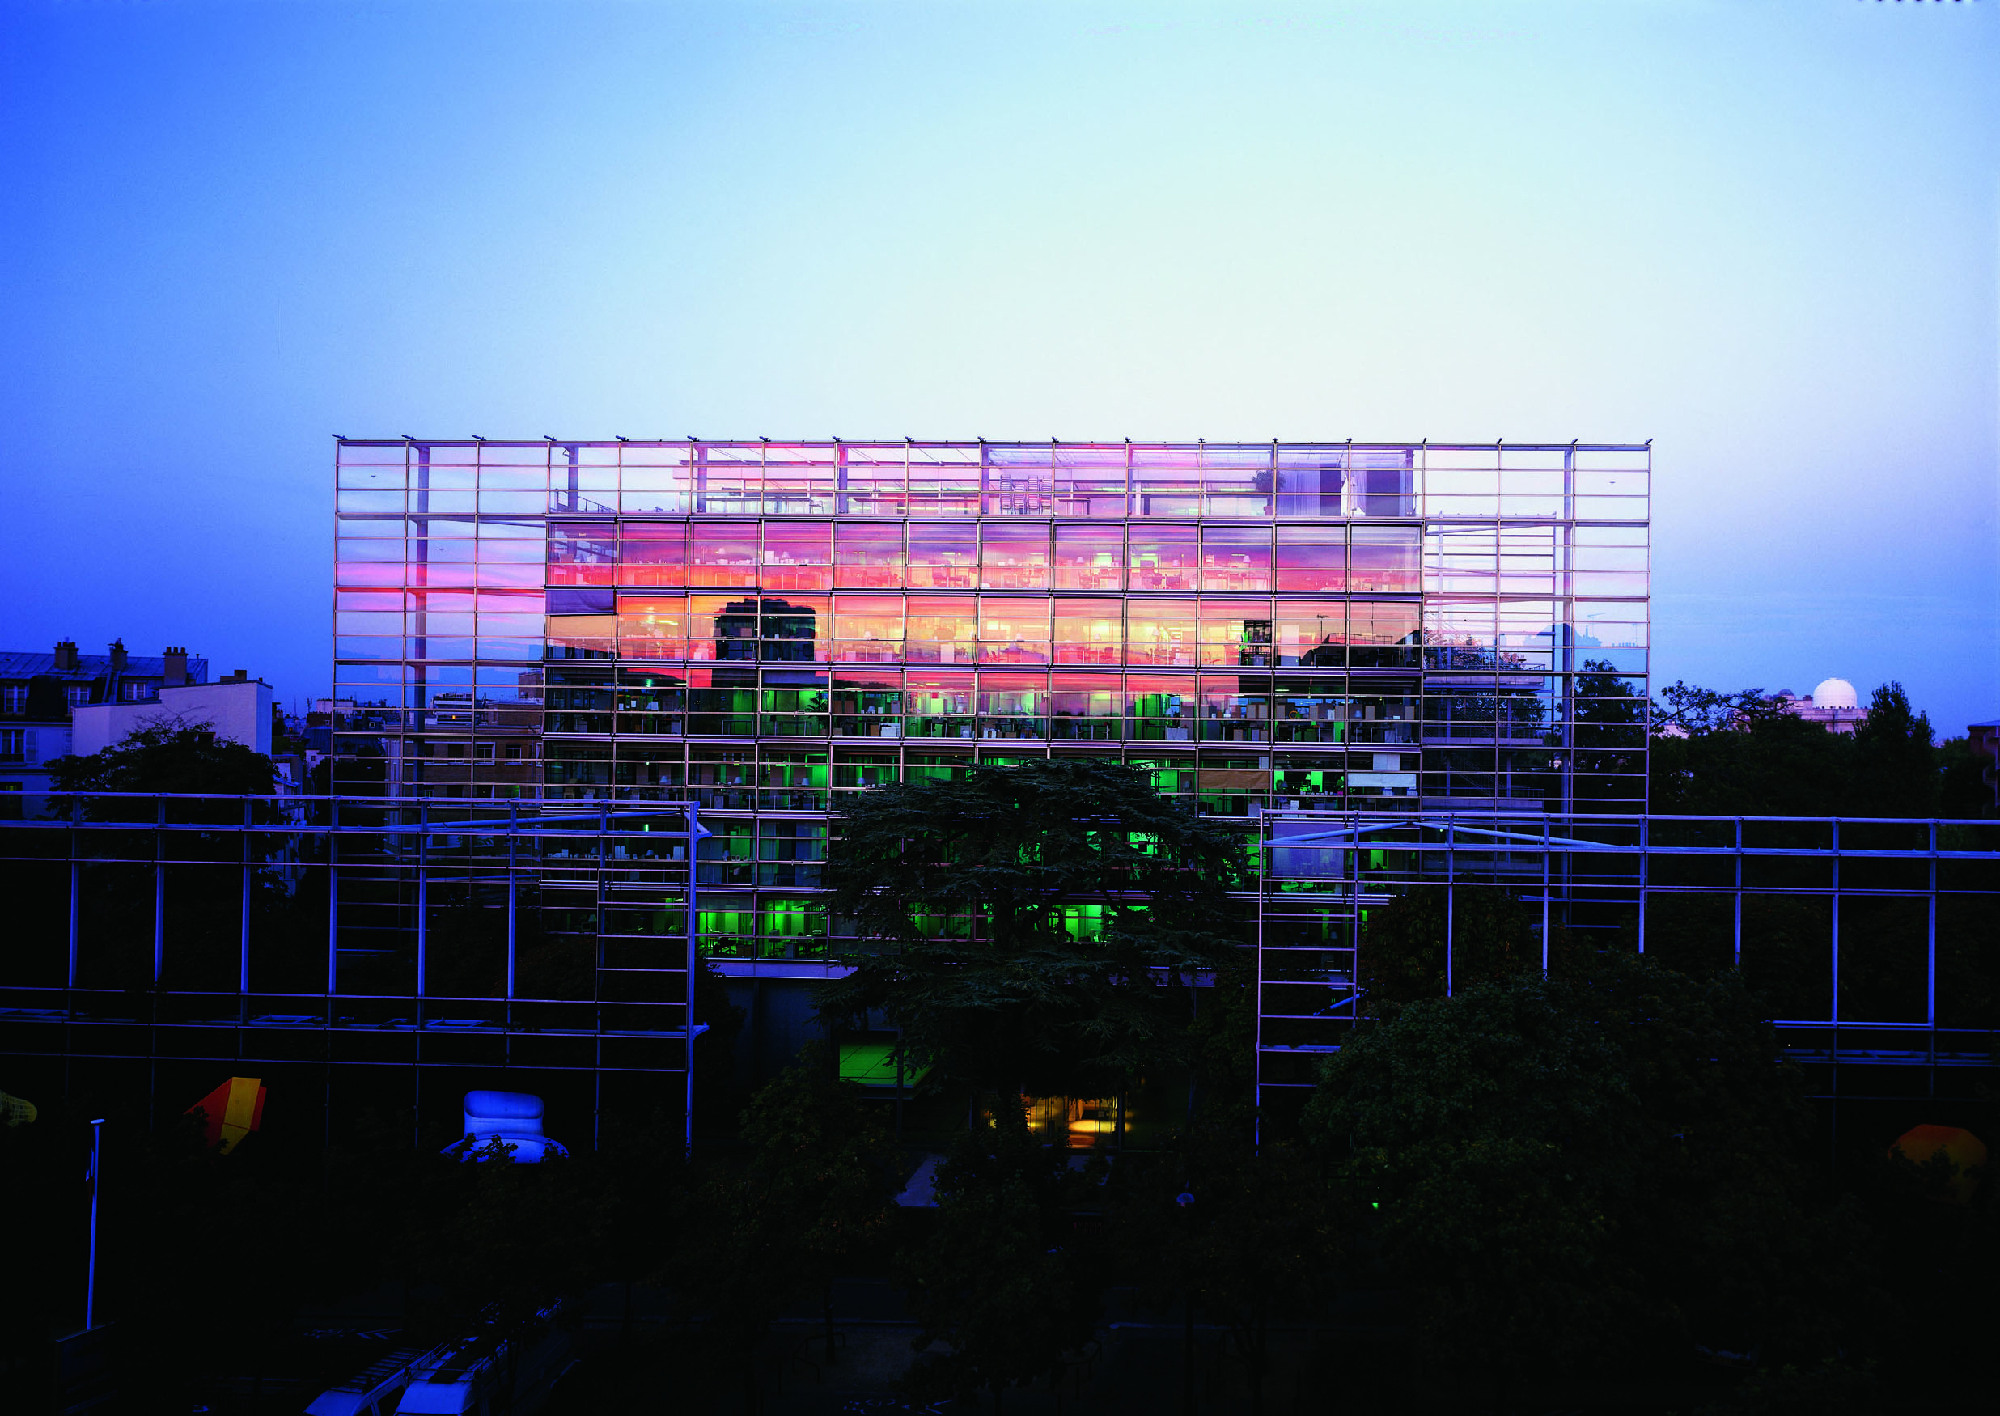 Fondation Cartier, 75014 Paris